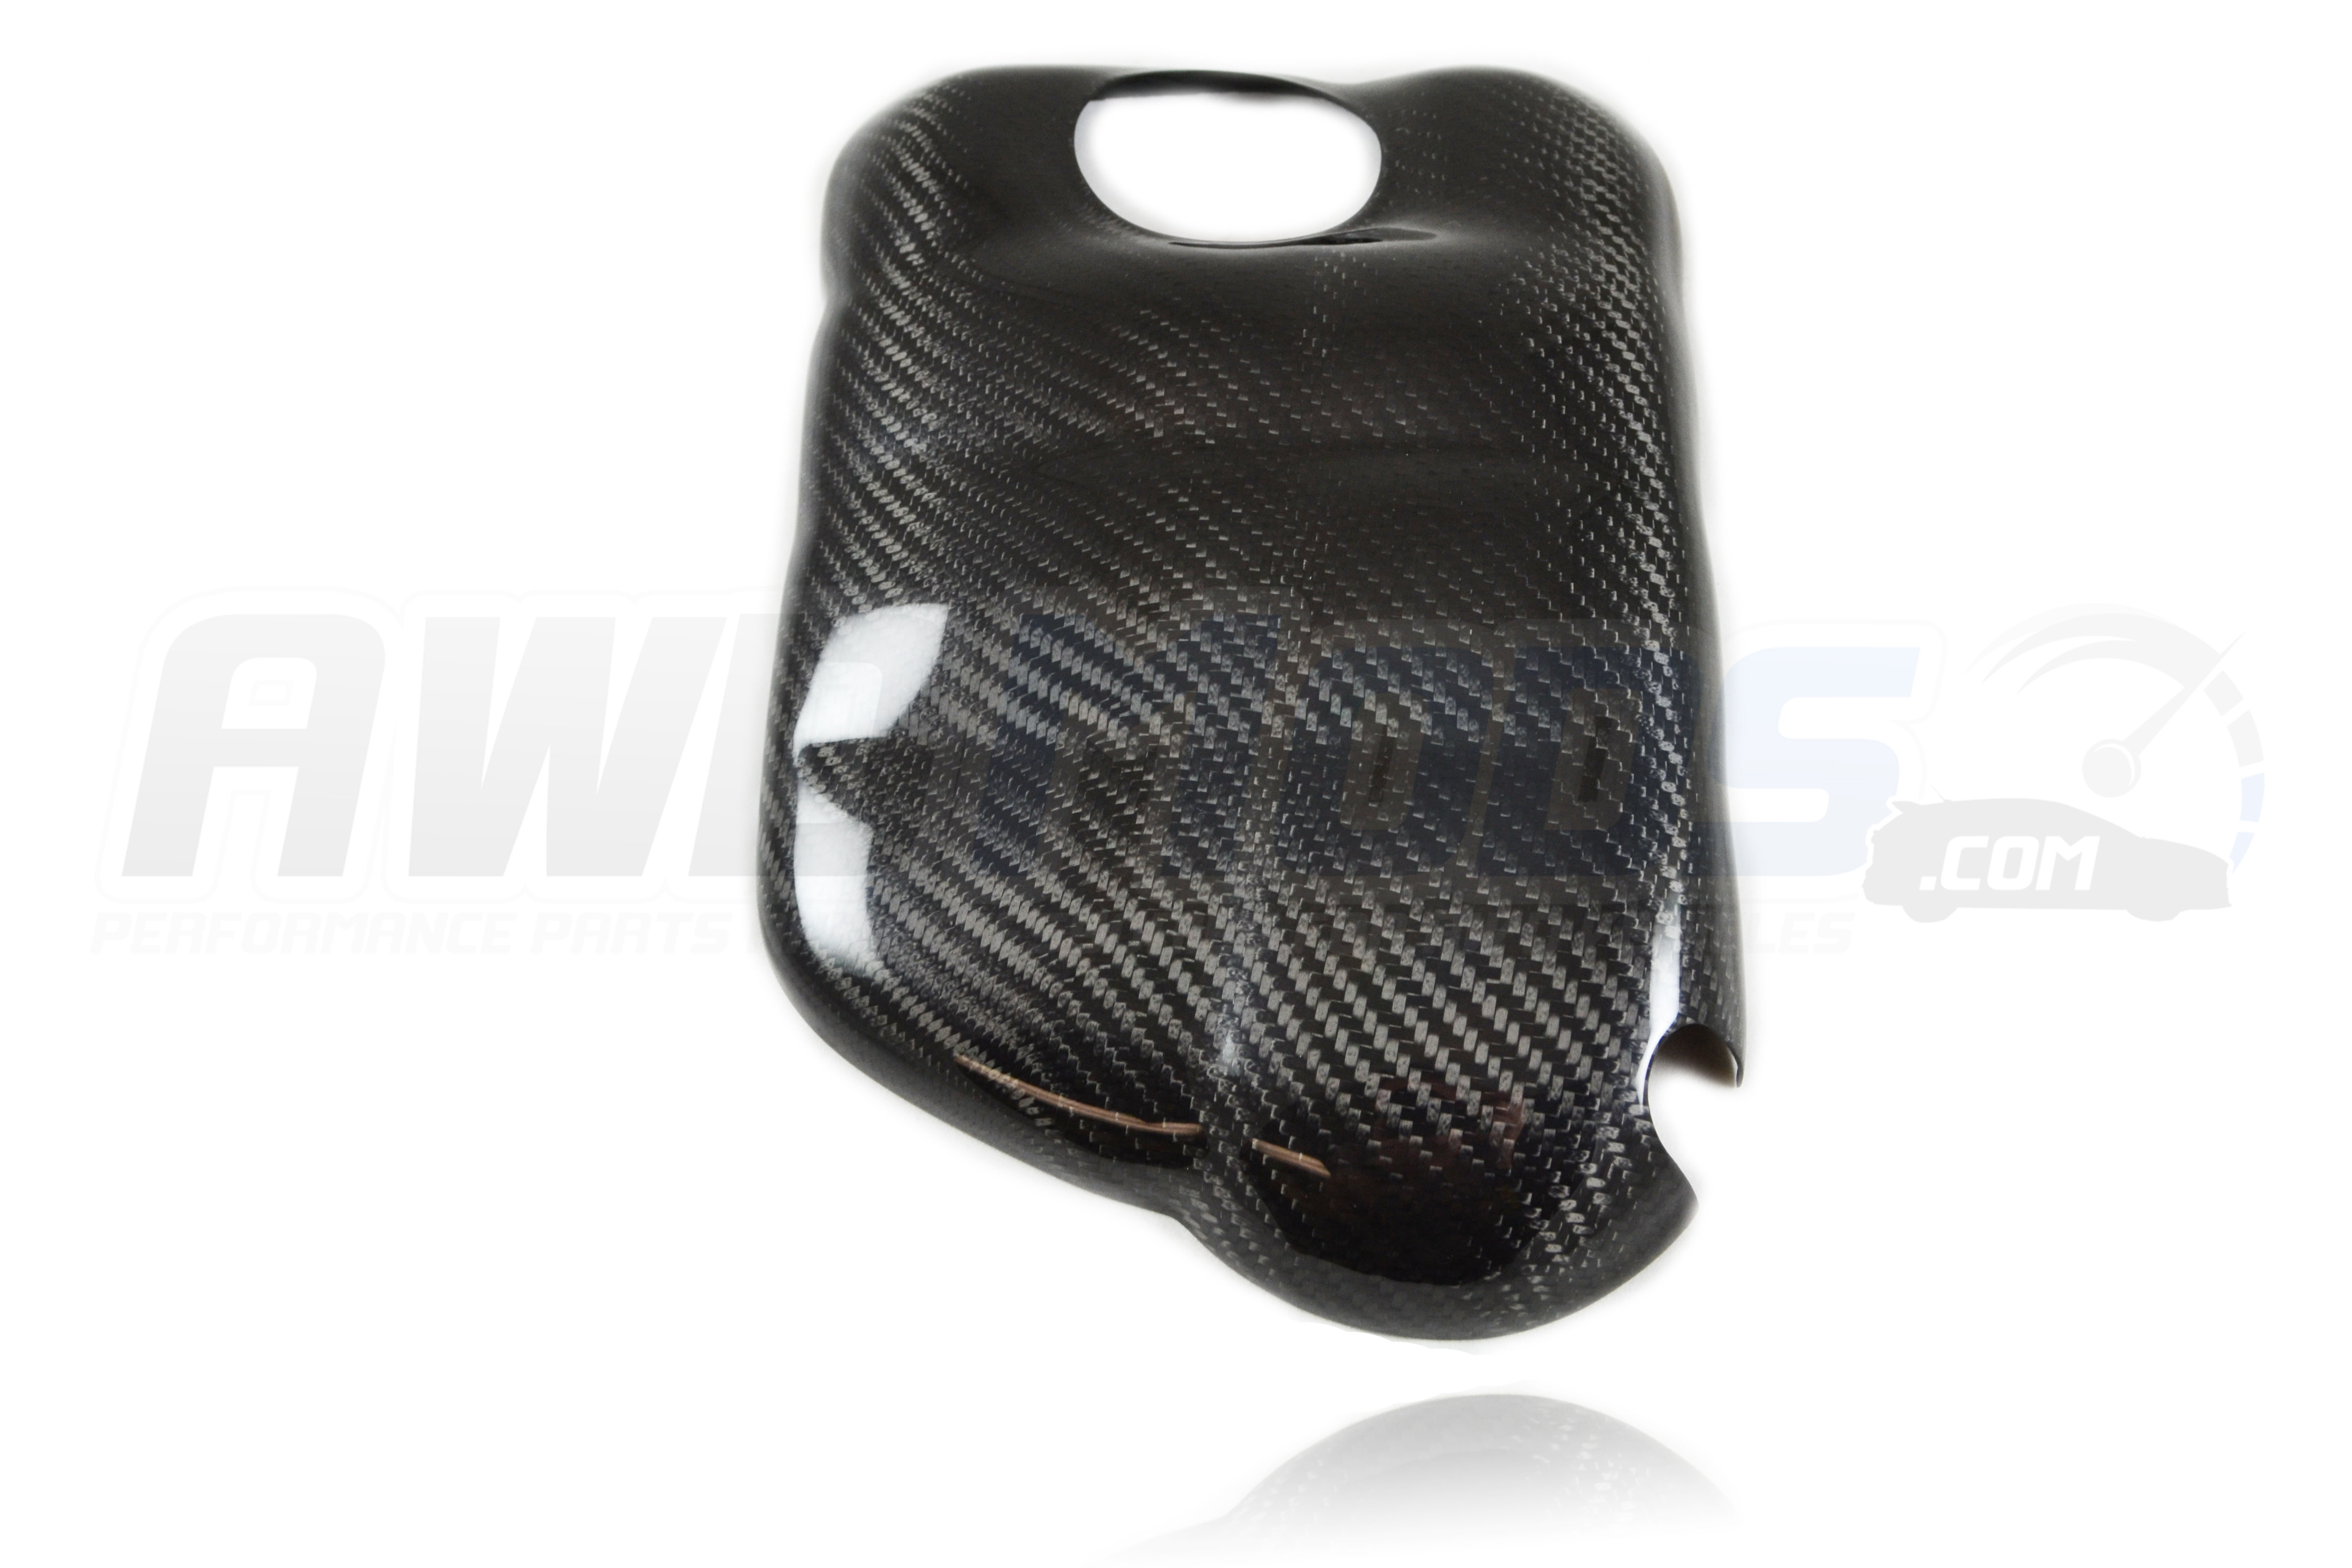 Ford Focus Rs St Carbon Fiber Coolant Tank Cover From Cal Pony Cars Sti Fuse Box For The